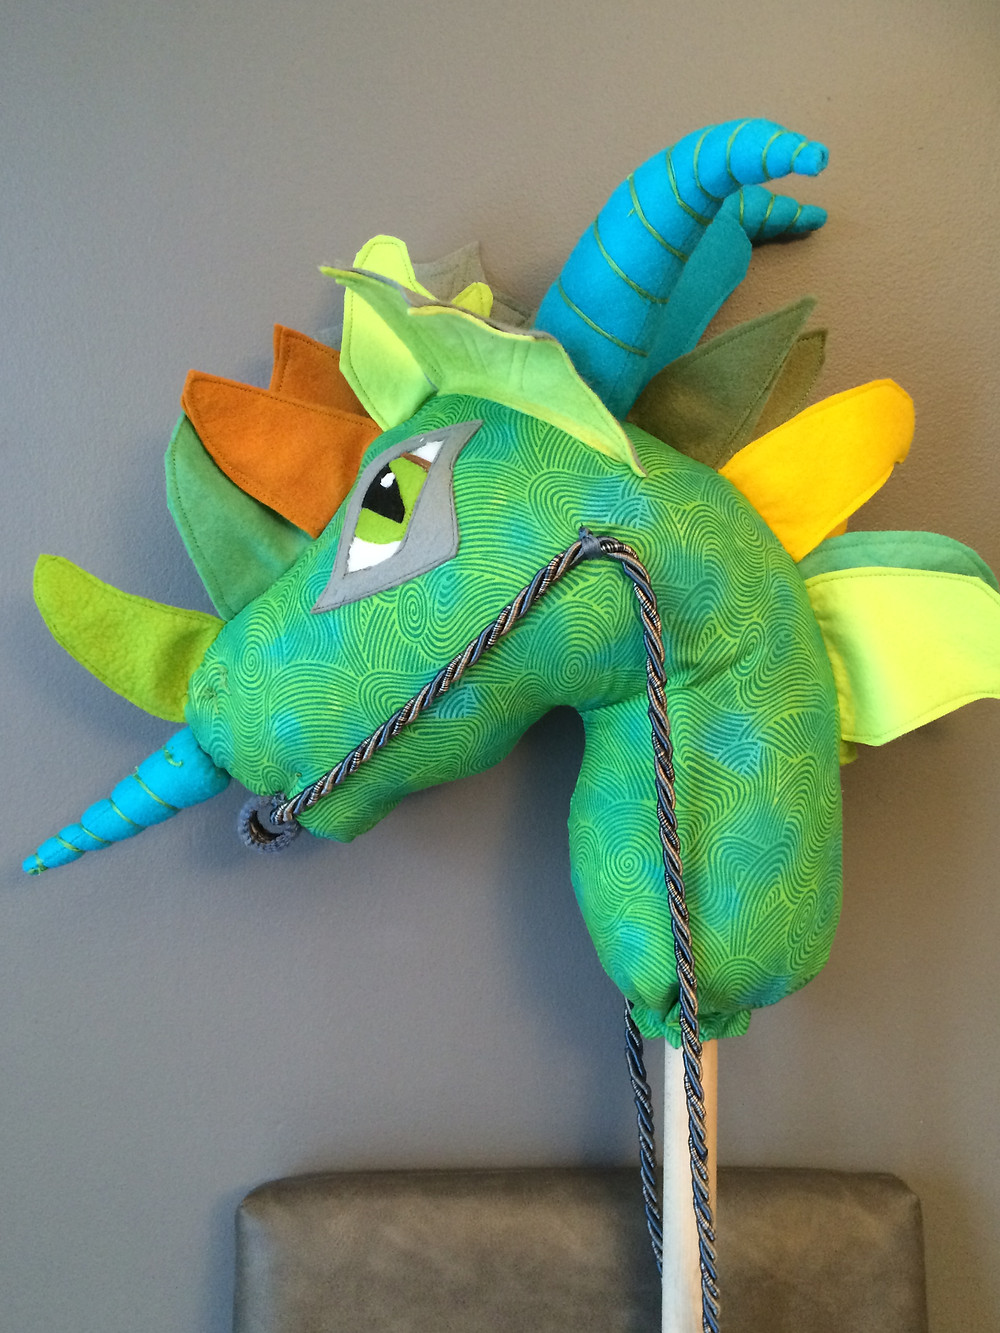 The Whimsey Woo made dragon